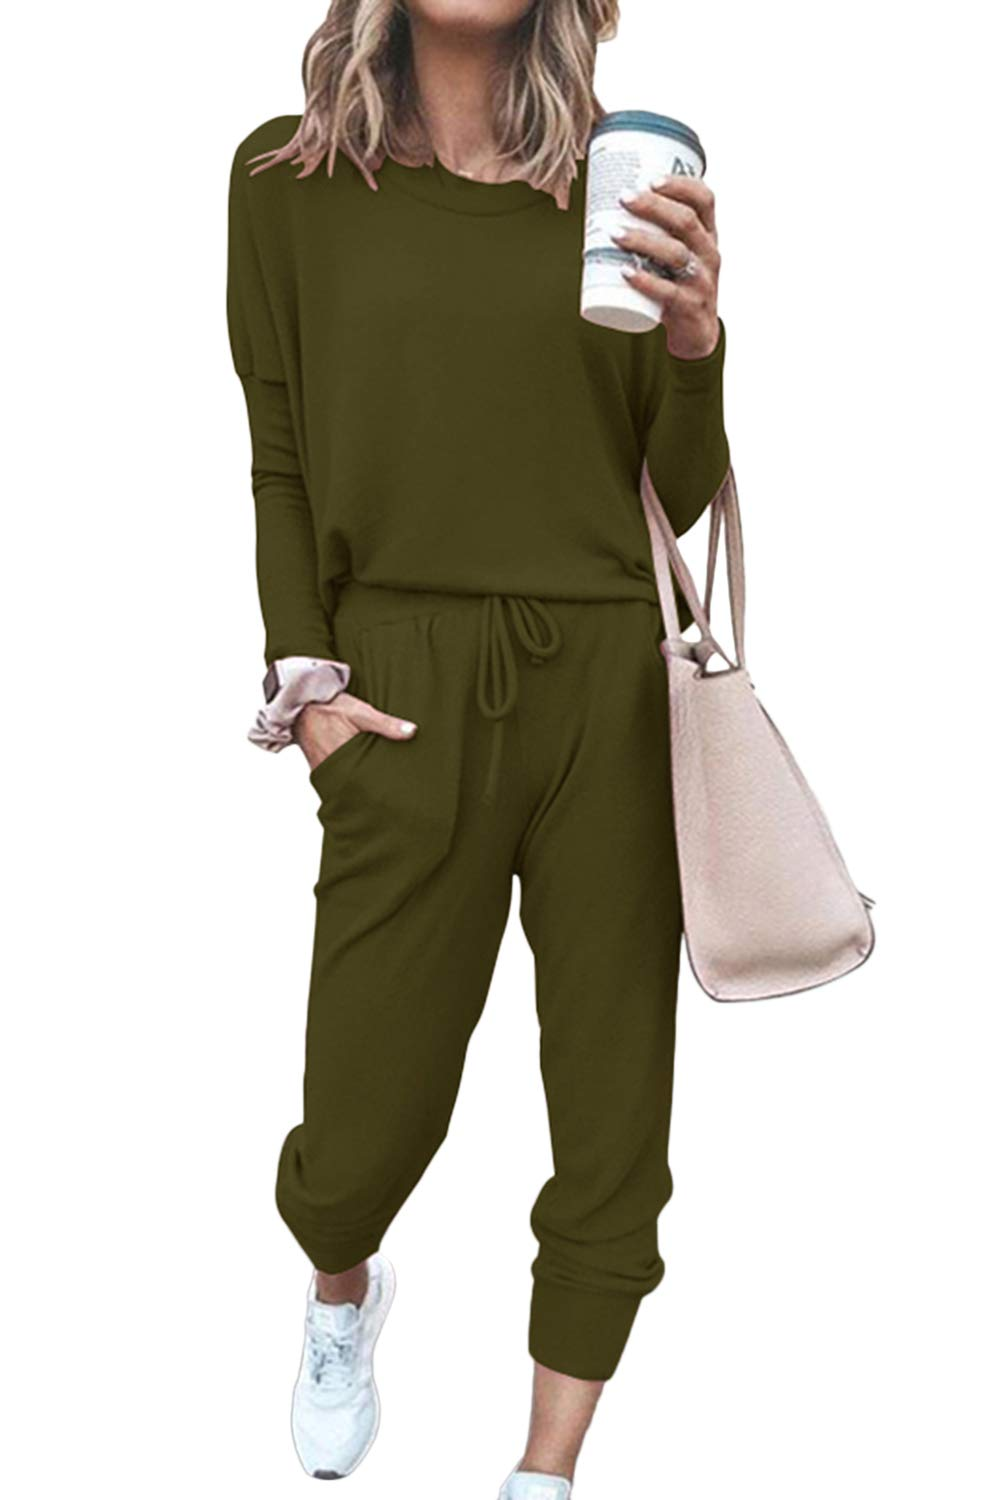 HAPCOPE Women's 2pcs Outfits Long Sleeve Active Tracksuits Jogger Pants Sports Set